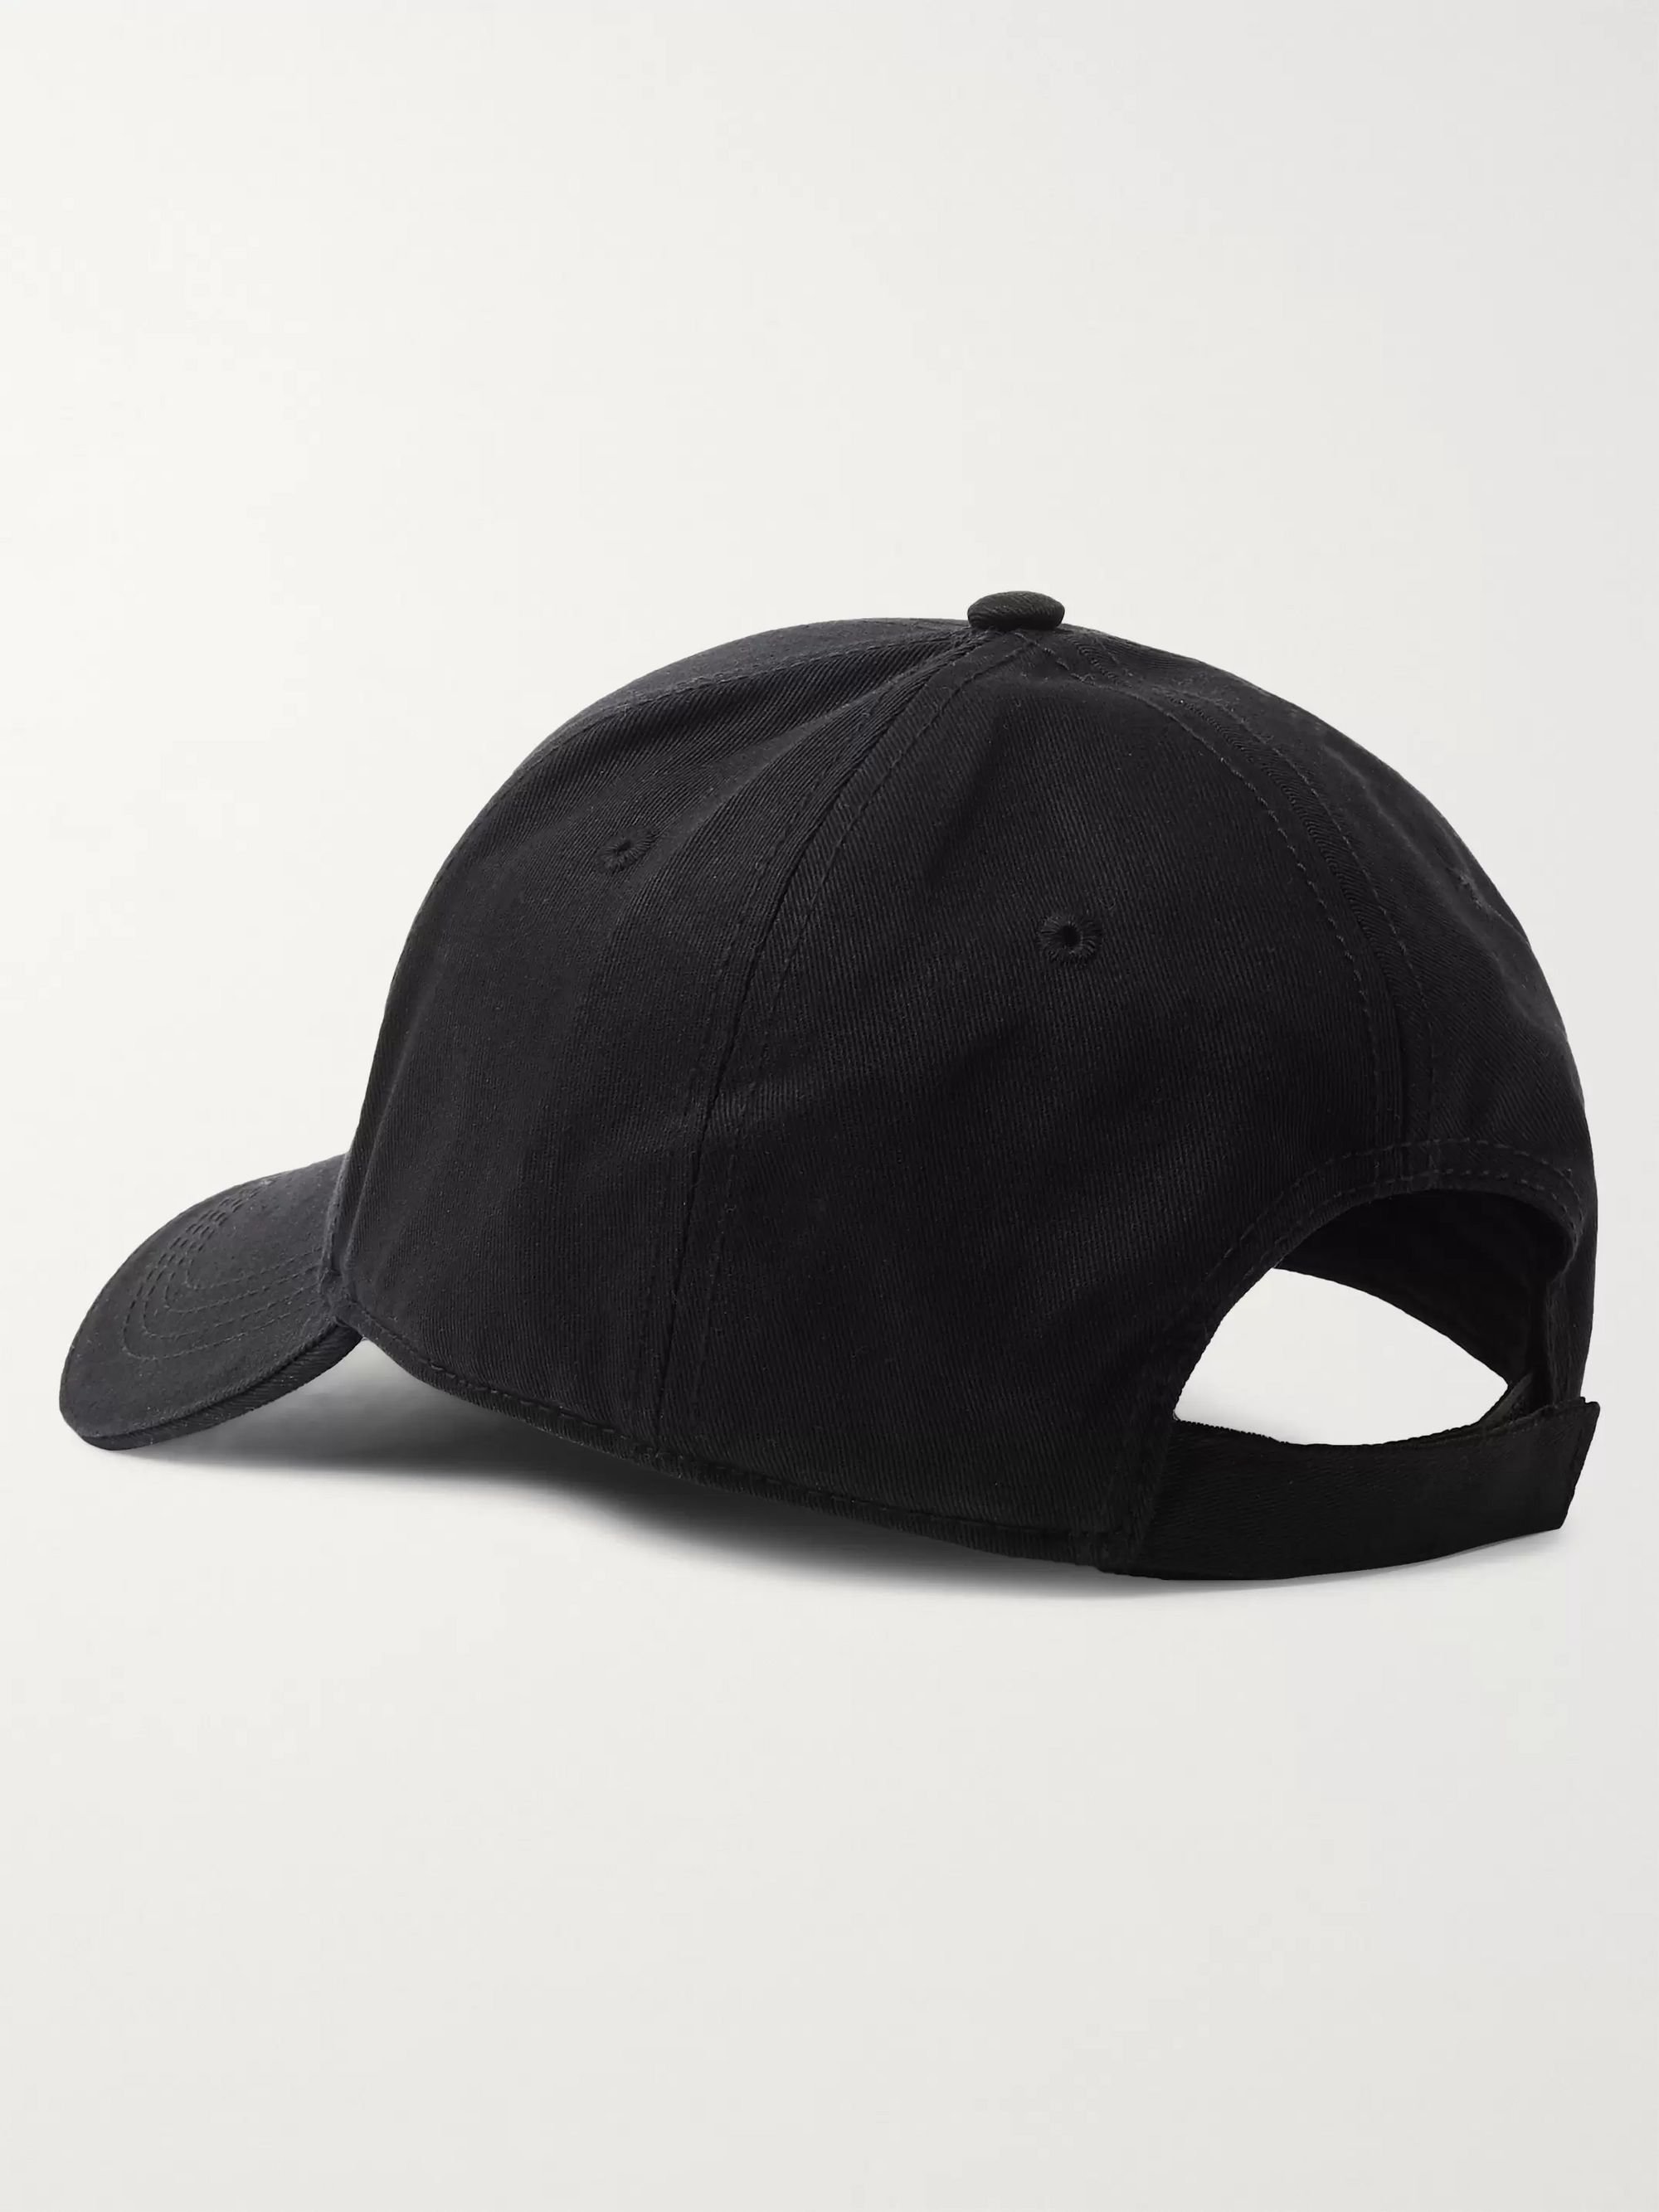 McQ Alexander McQueen Logo-Embroidered Cotton-Twill Baseball Cap